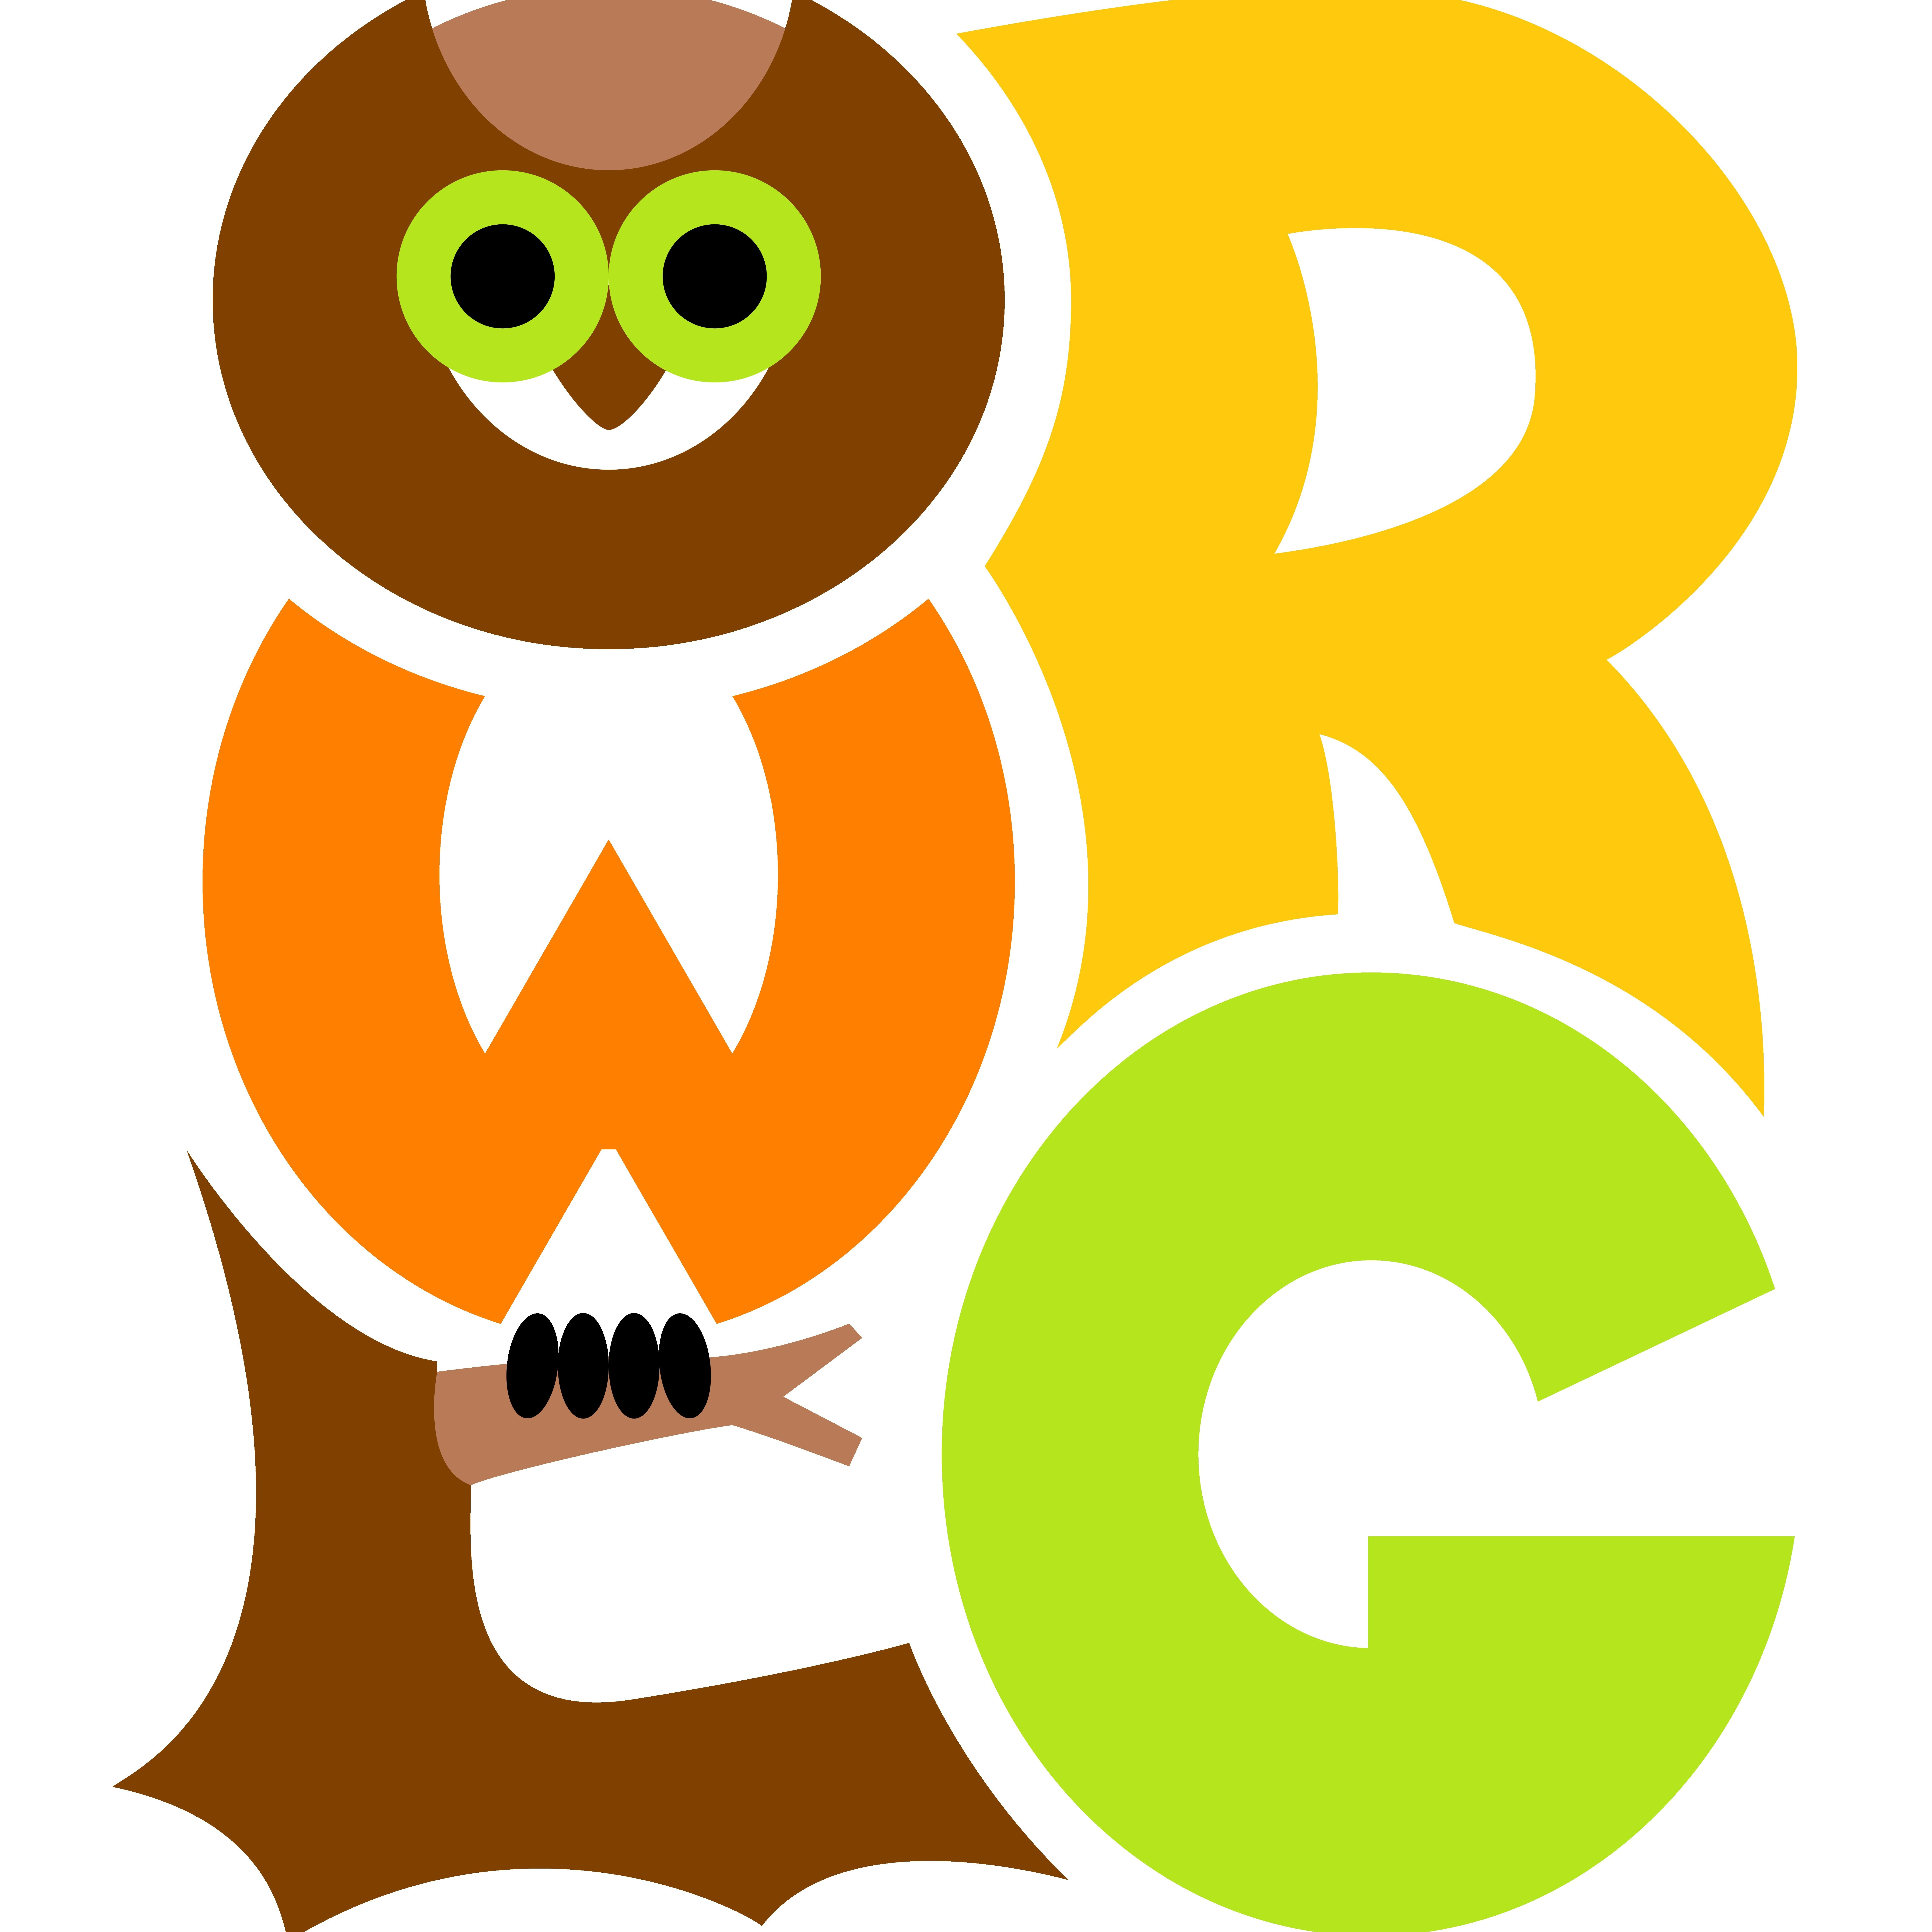 The Owl Resource Group